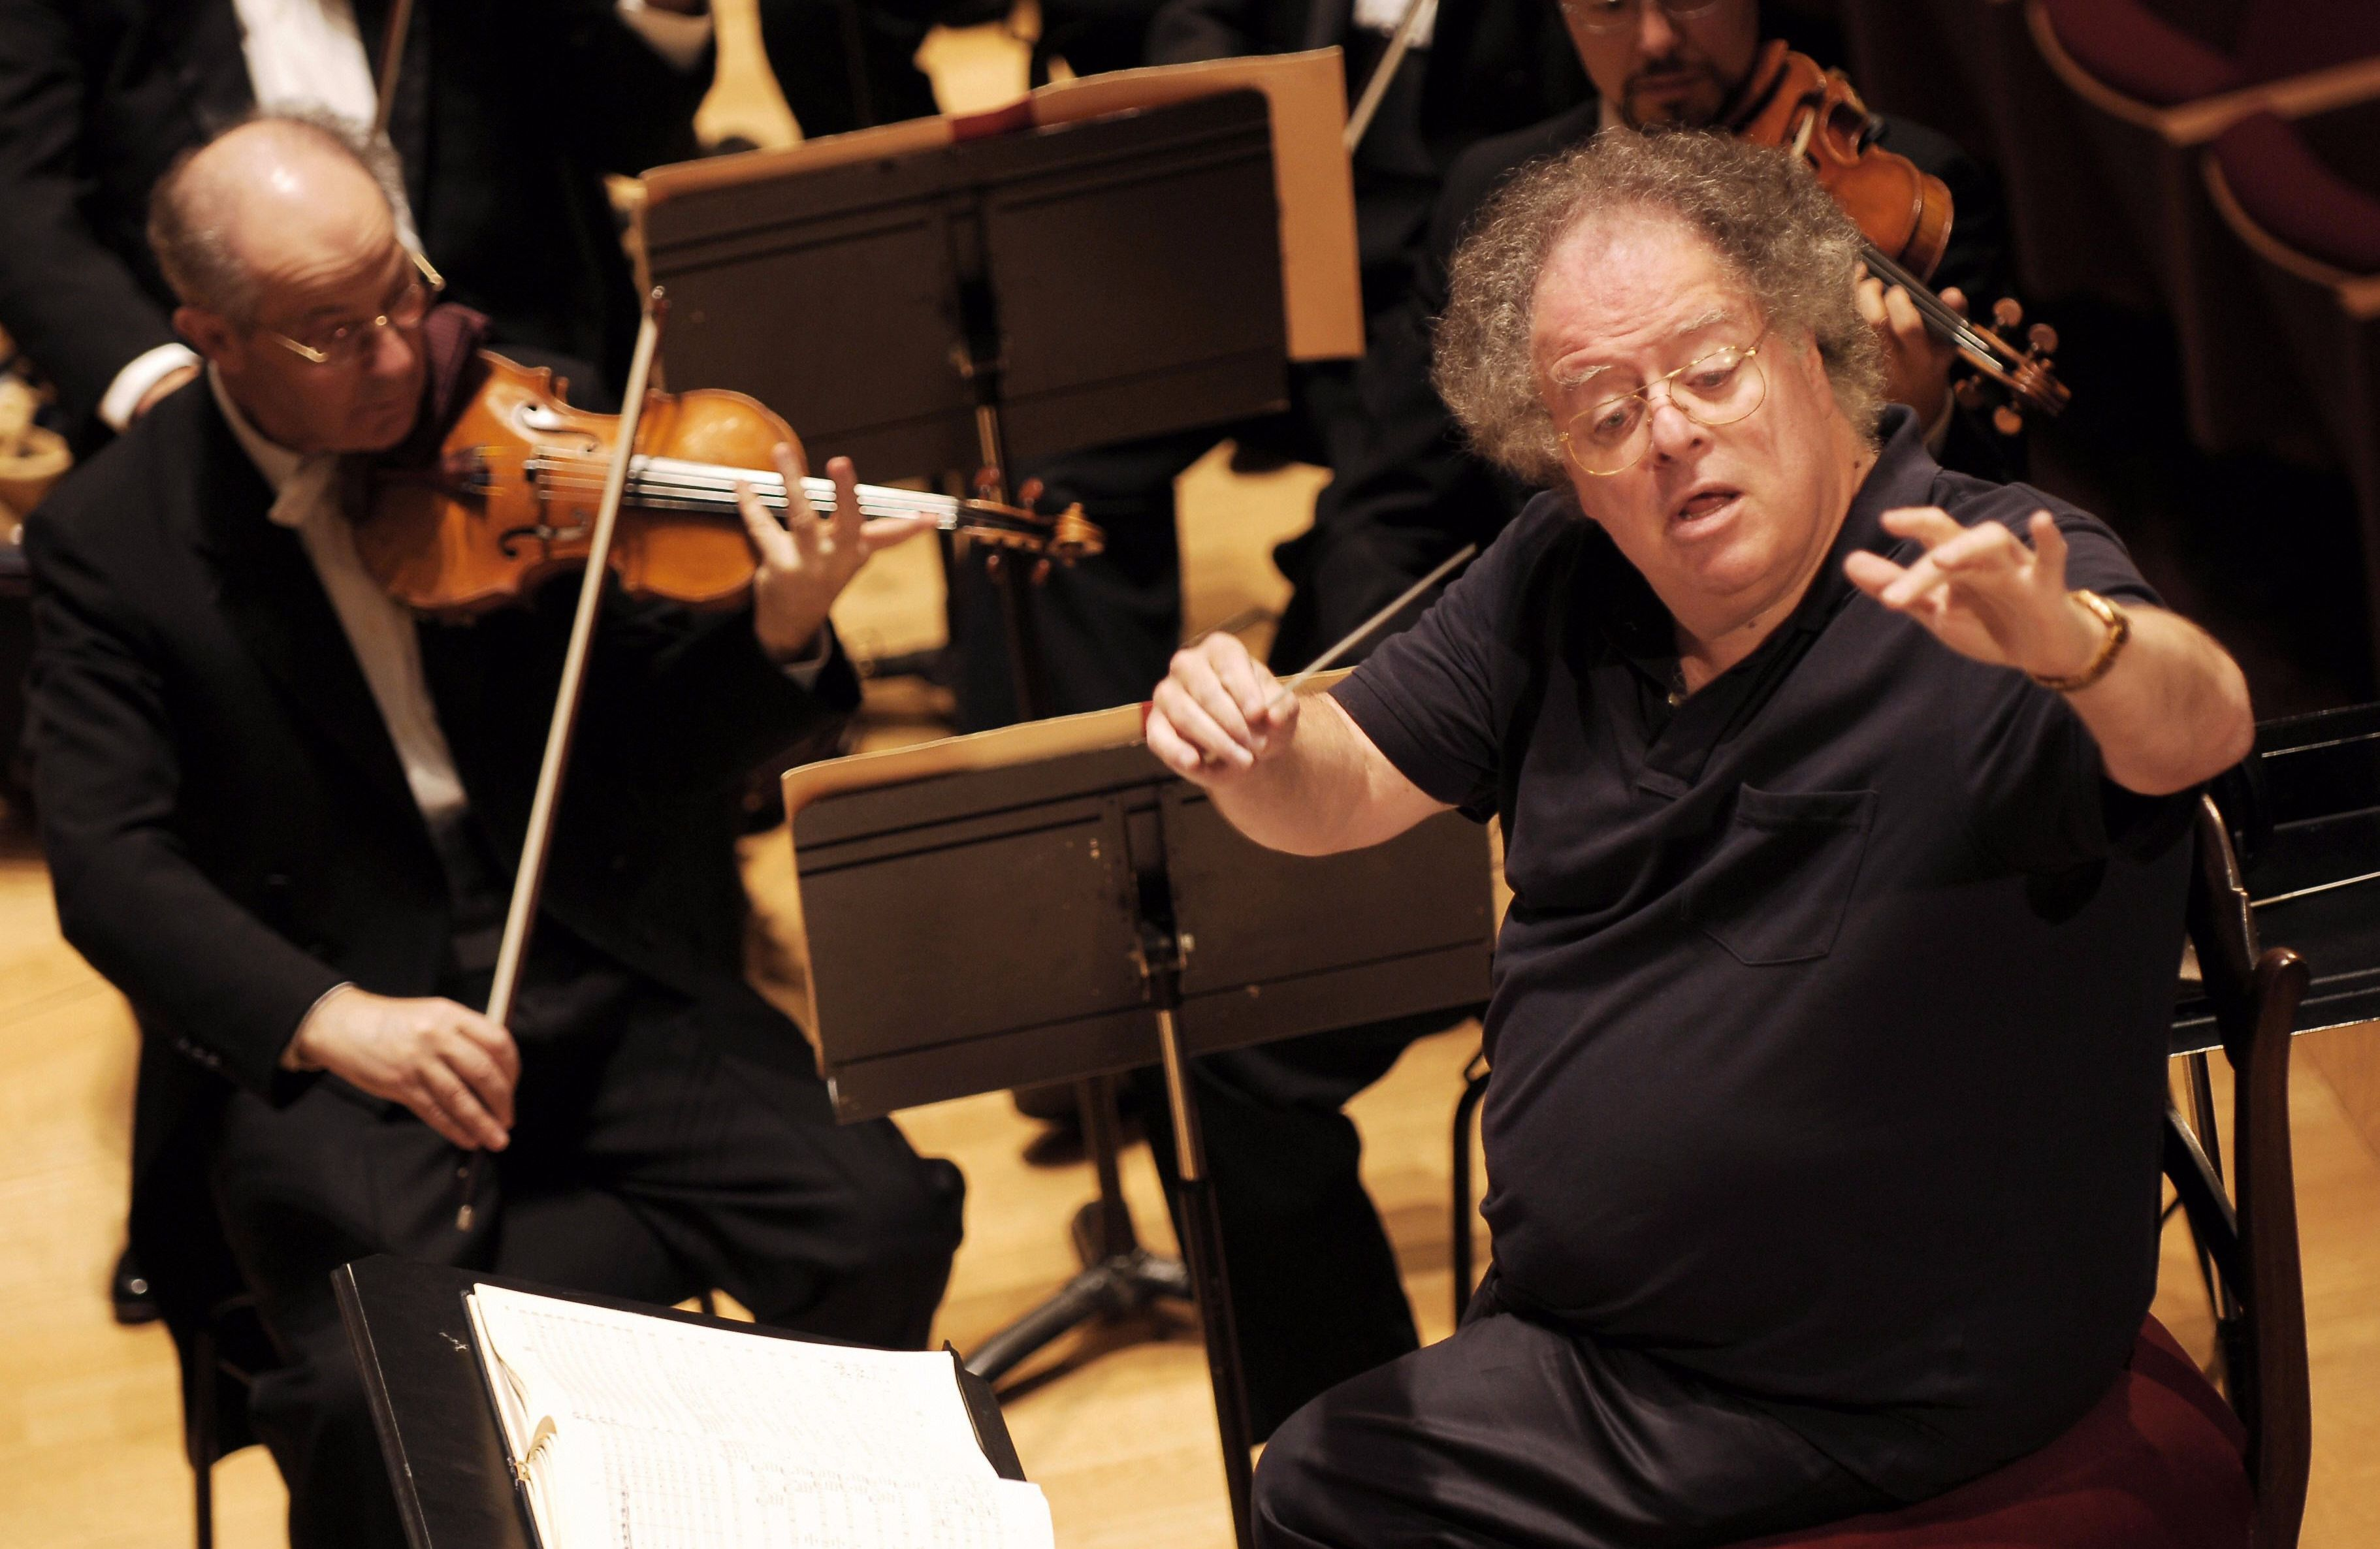 Retiring at 72: Longtime music director James Levine will be departing the Metropolitan Opera for health reasons.